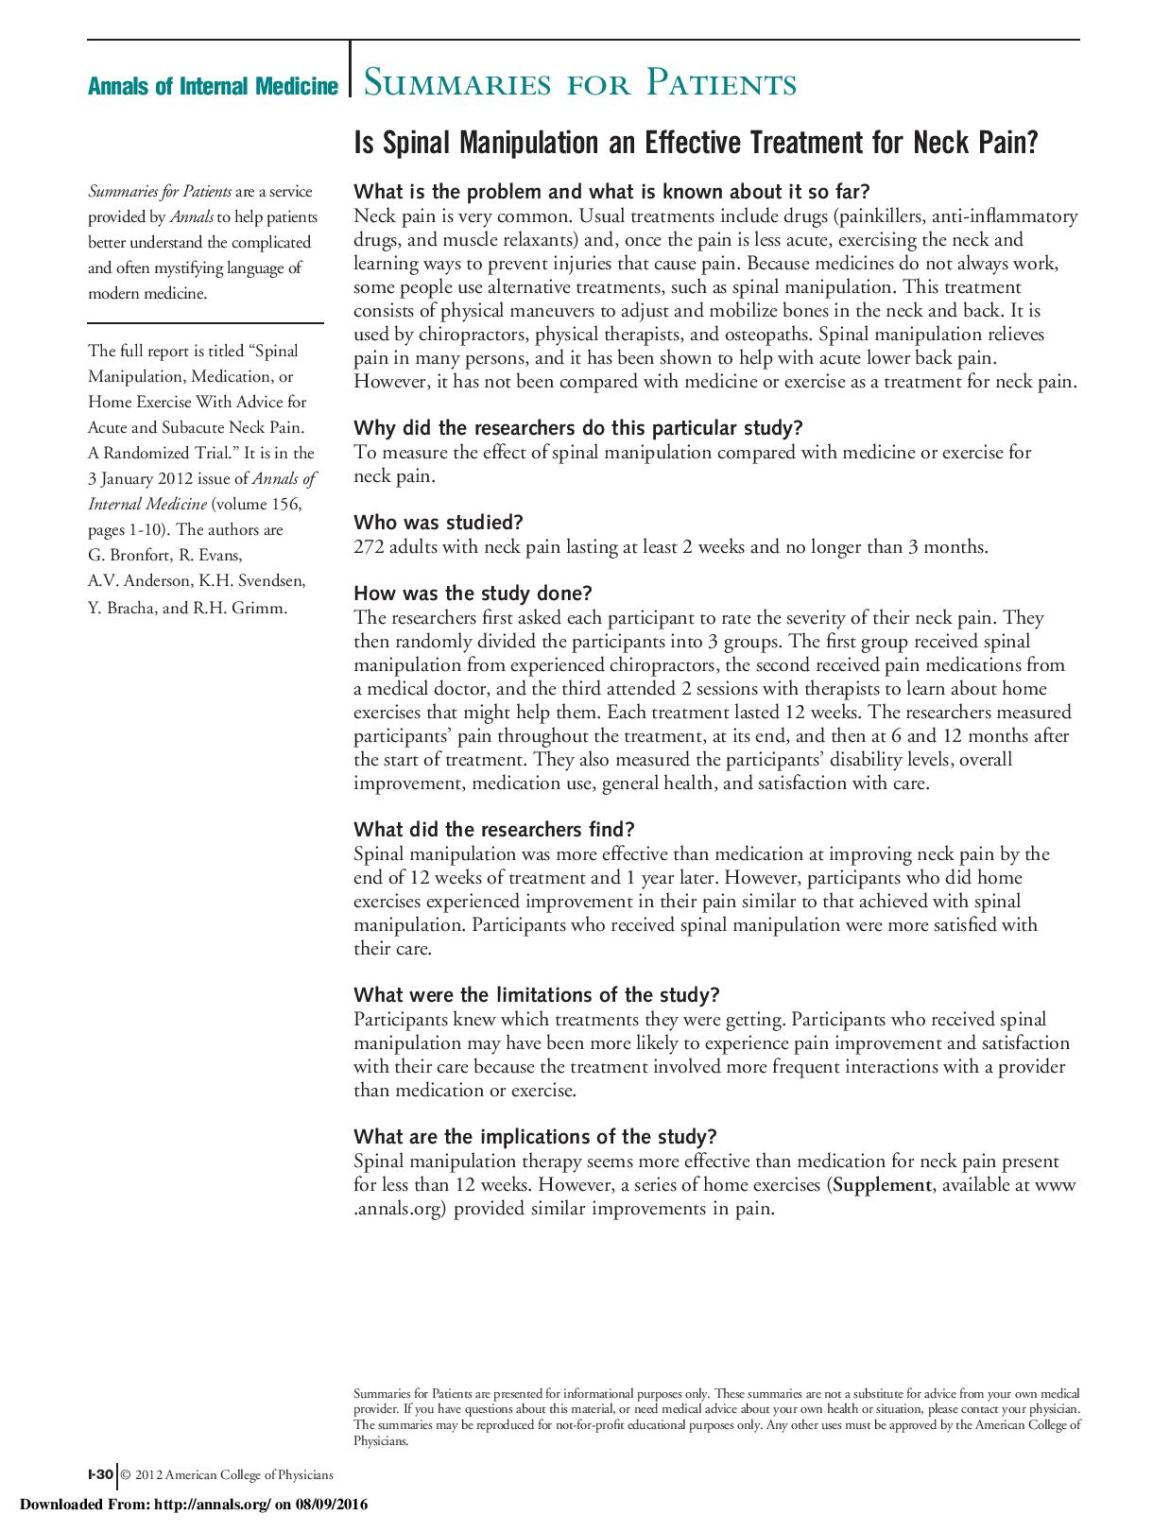 Is Spinal Manipulation an Effective Treatment for Neck Pain_-page-001